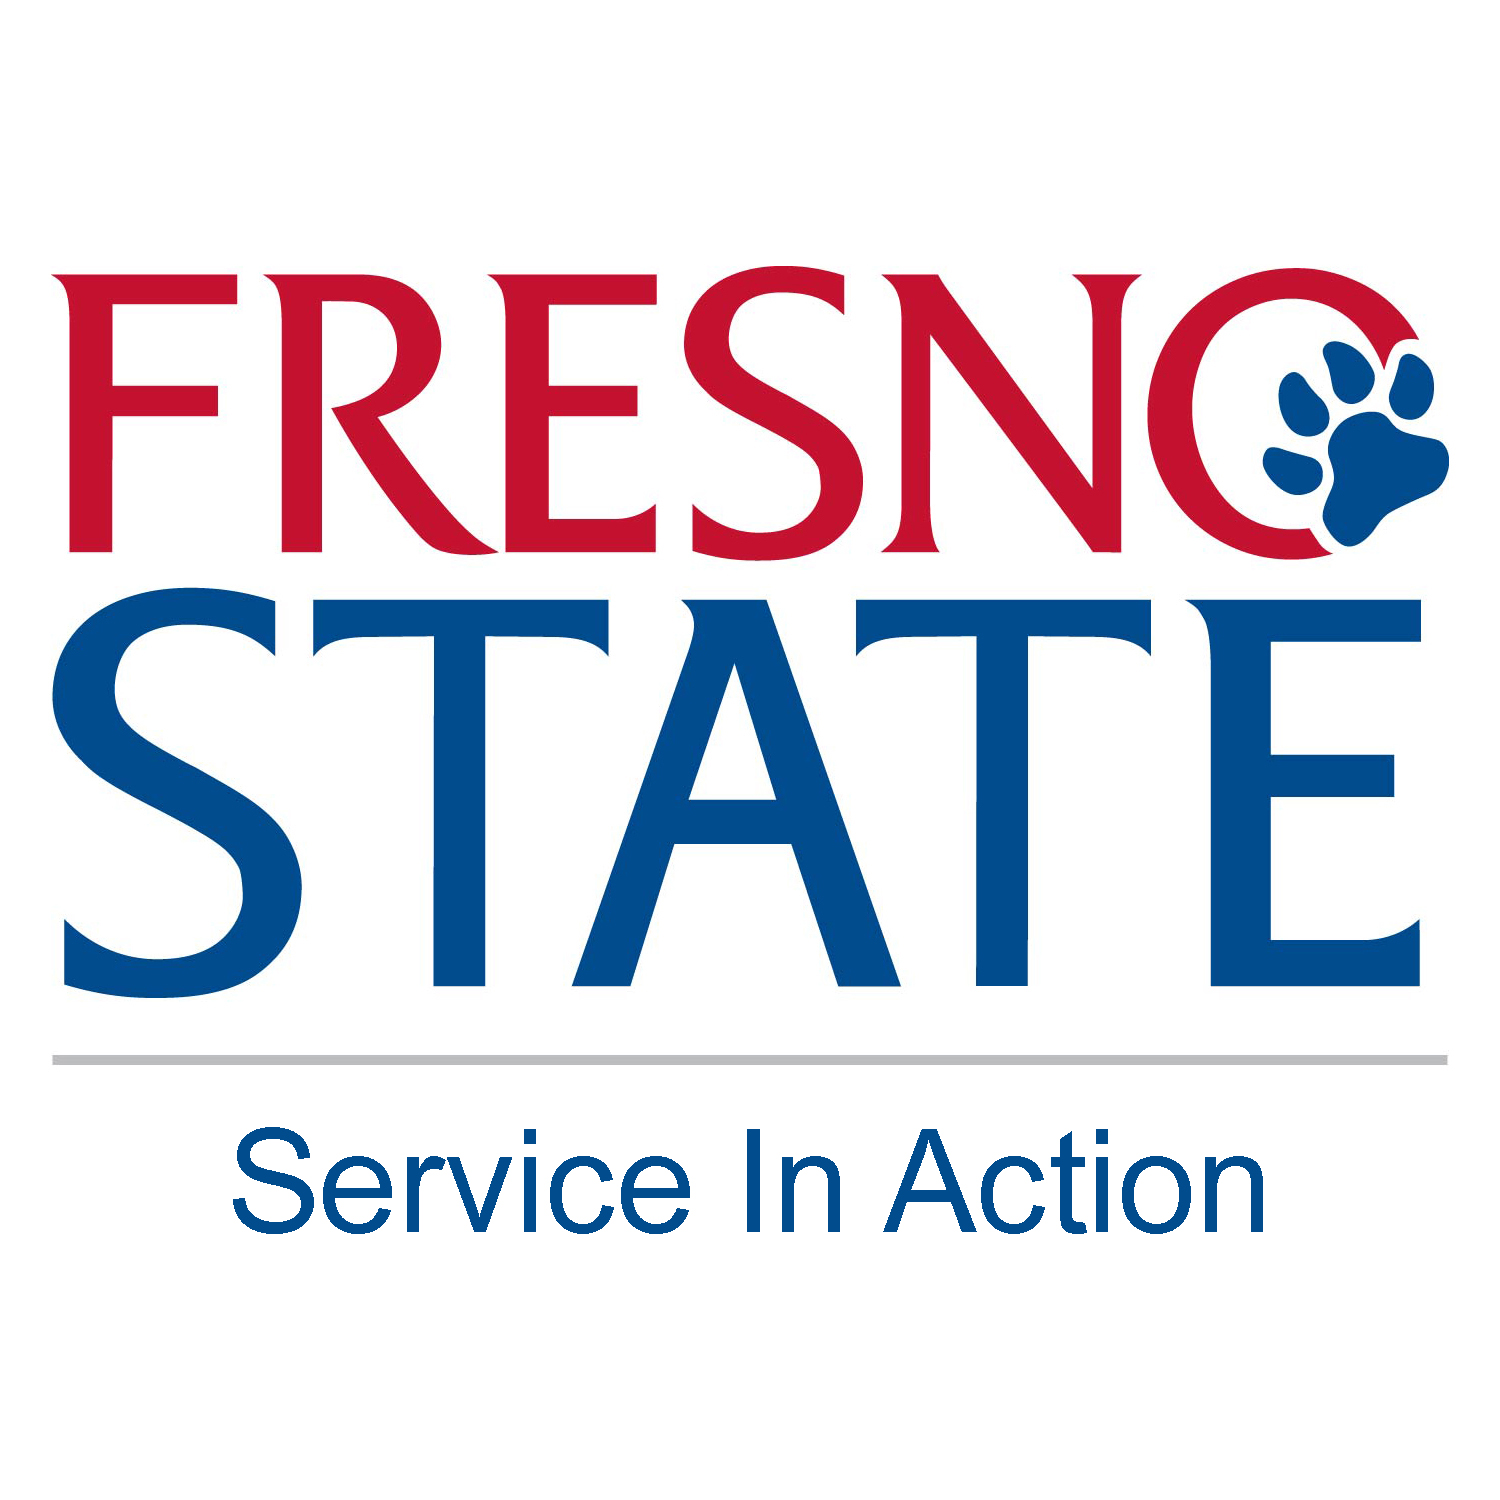 fresno state writing center The writing center is here to help fresno state students with the reading and writing you're working on throughout the semester please stop by and meet us or contact us at 278-0334 the writing center is located in the kremen education building, ed 184.